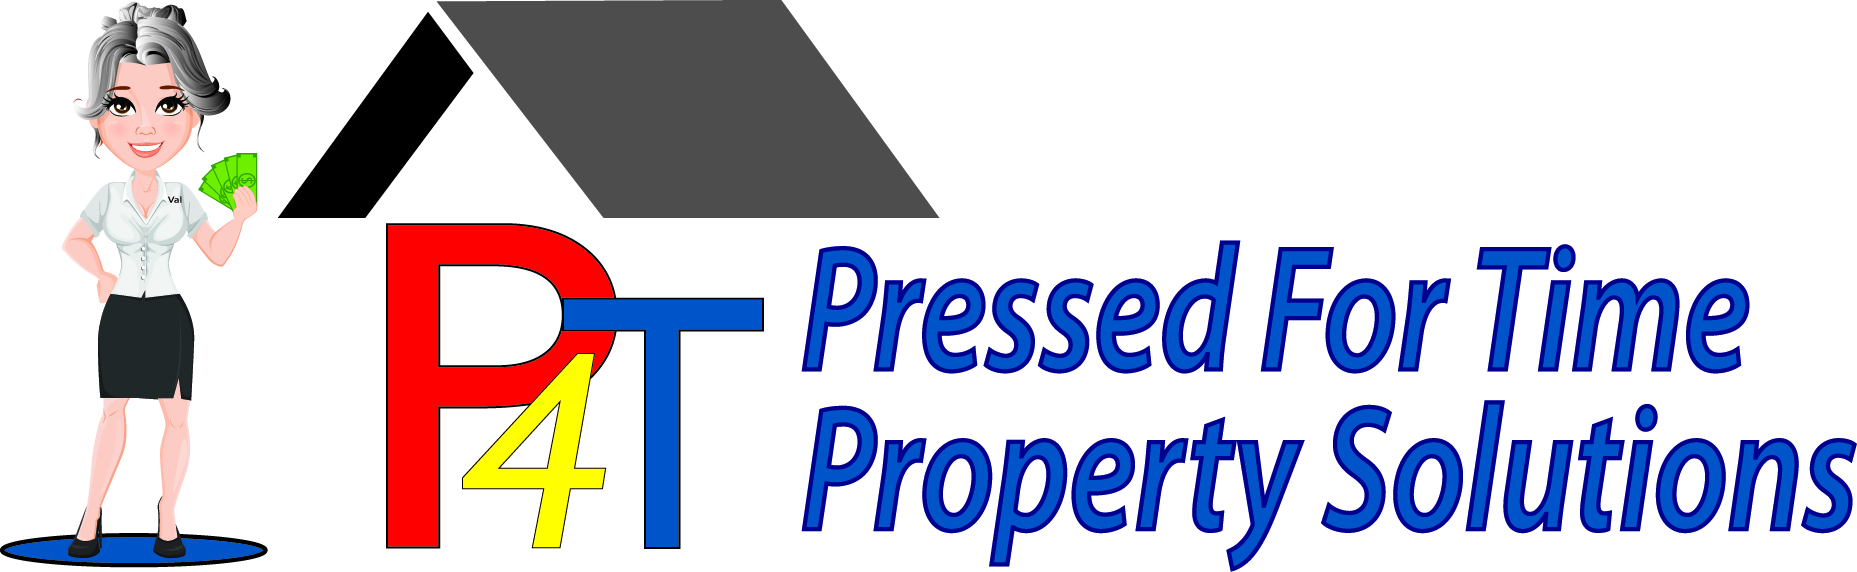 Pressed for Time Property Solutions, LLC